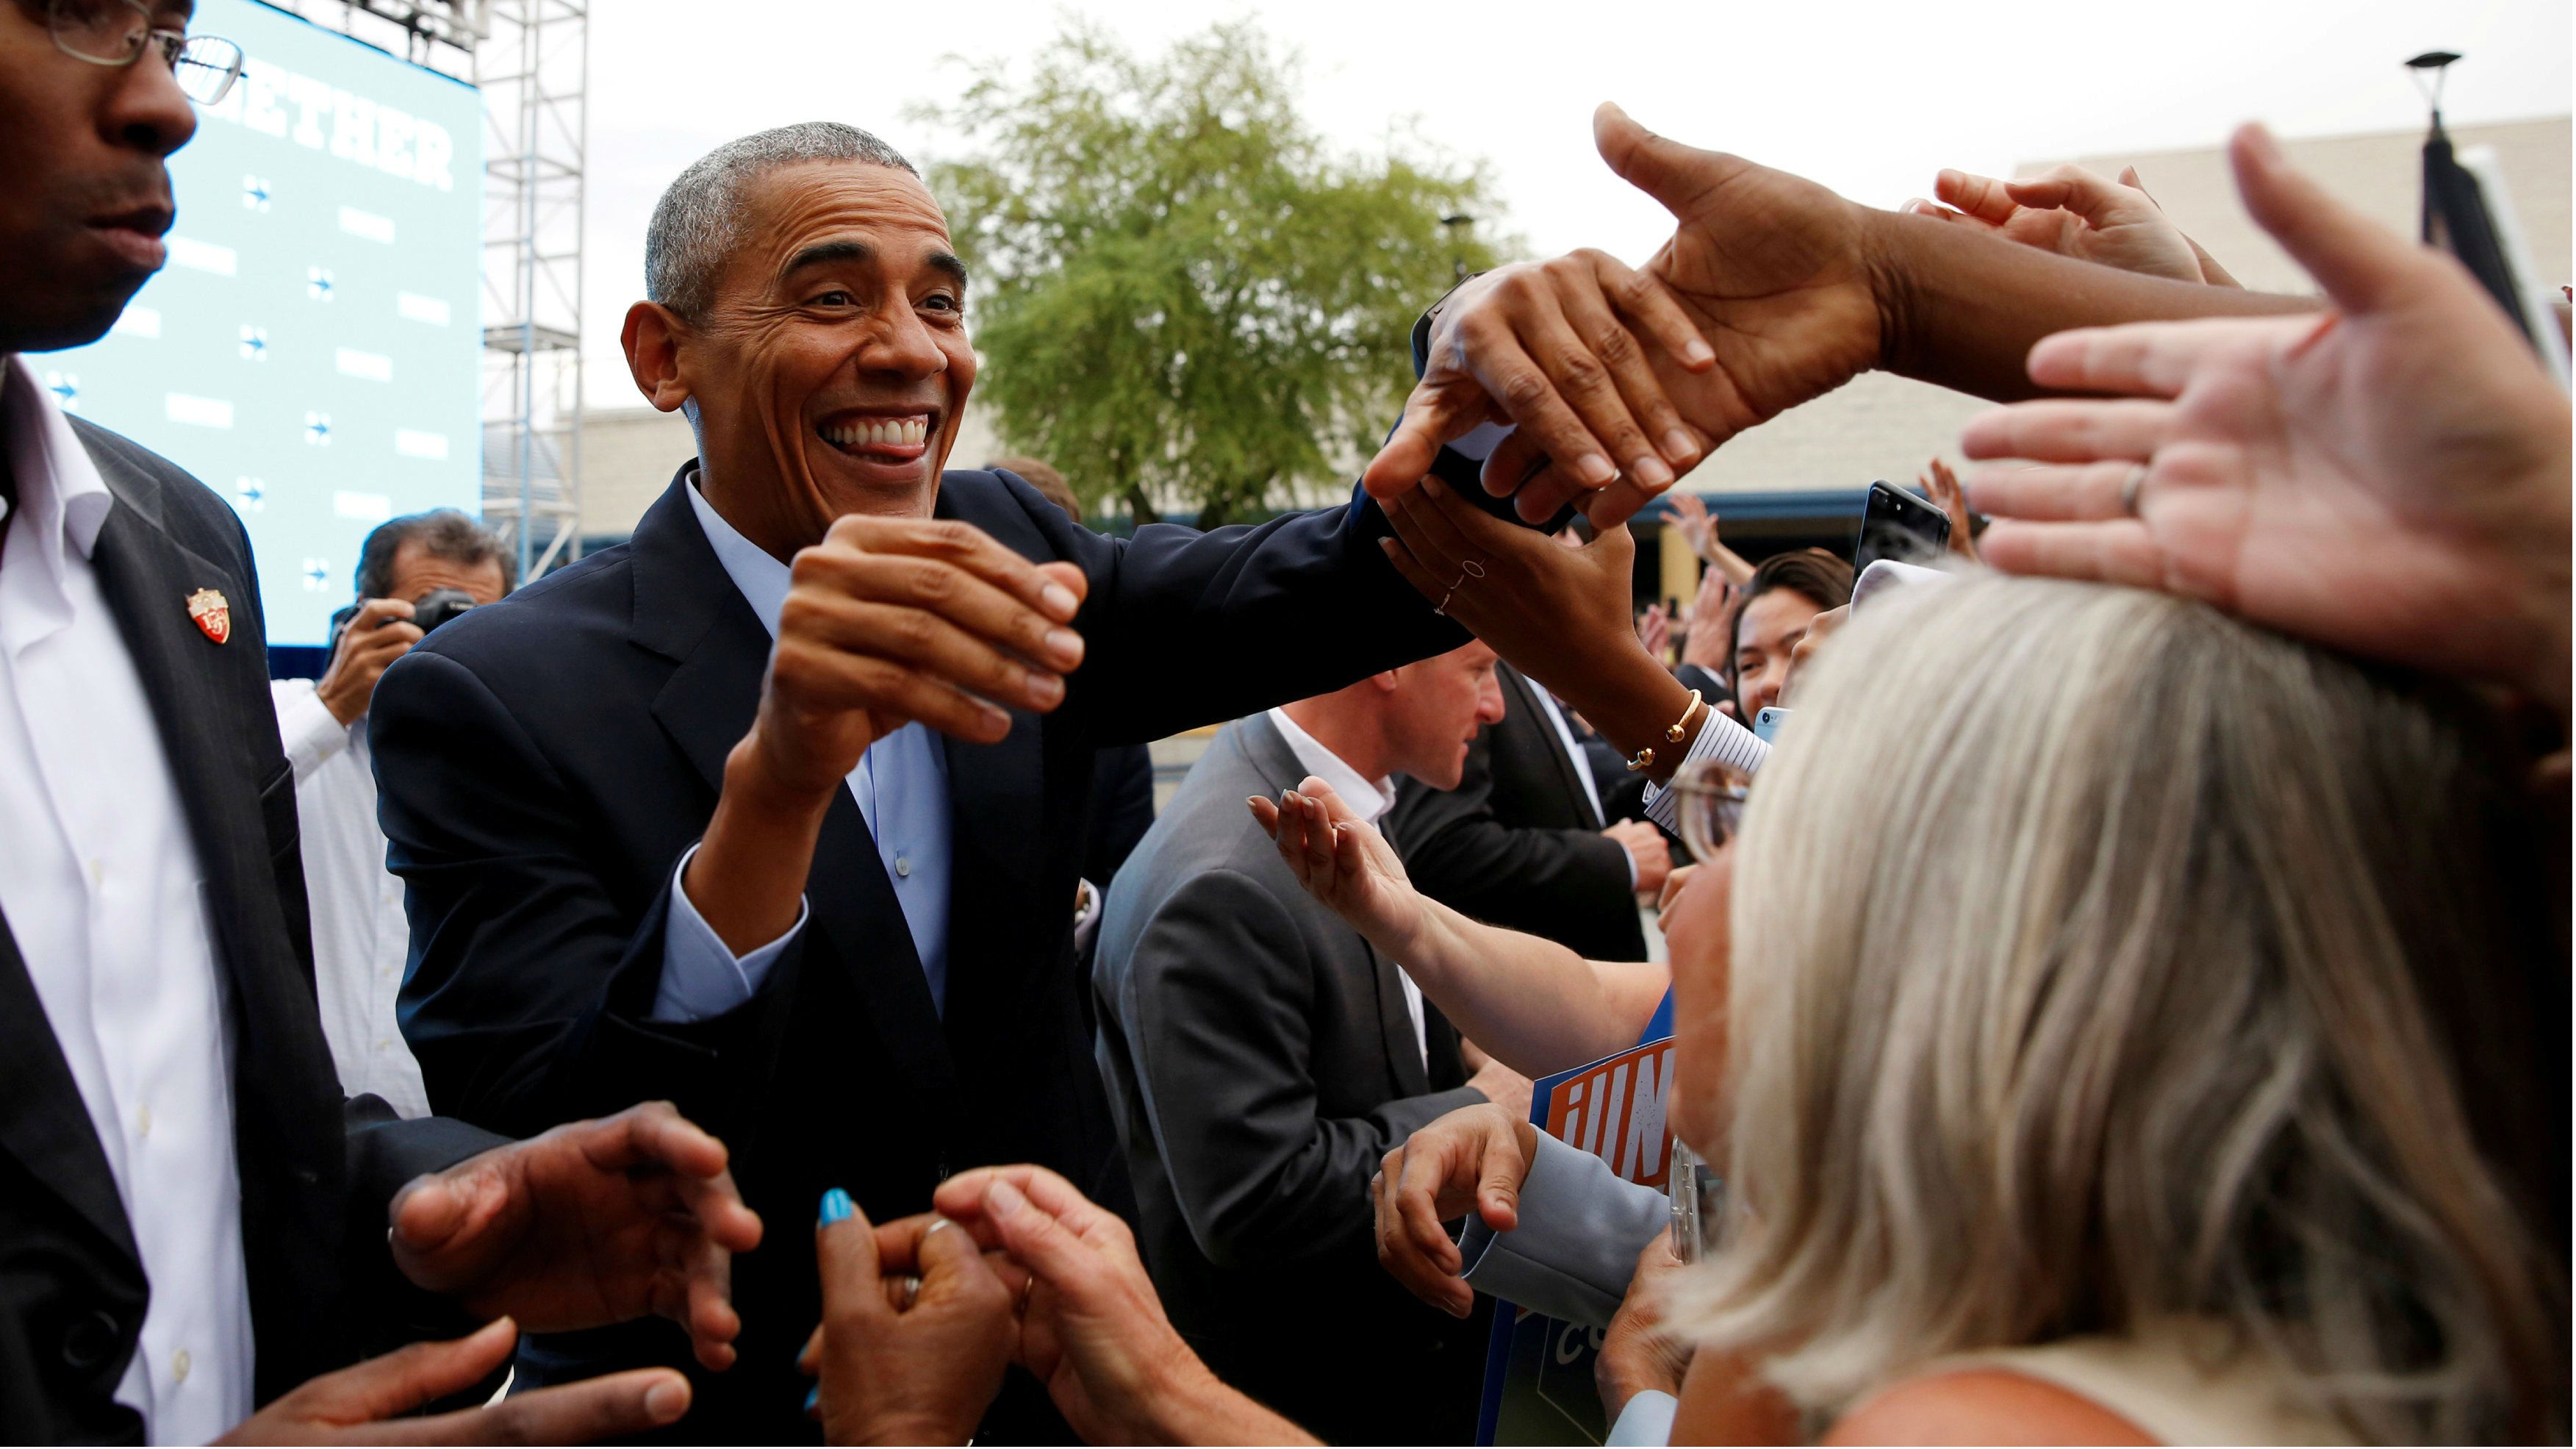 U.S. President Barack Obama greets supporters at a rally for Hillary Clinton's campaign in Las Vegas, Nevada October 23, 2016.